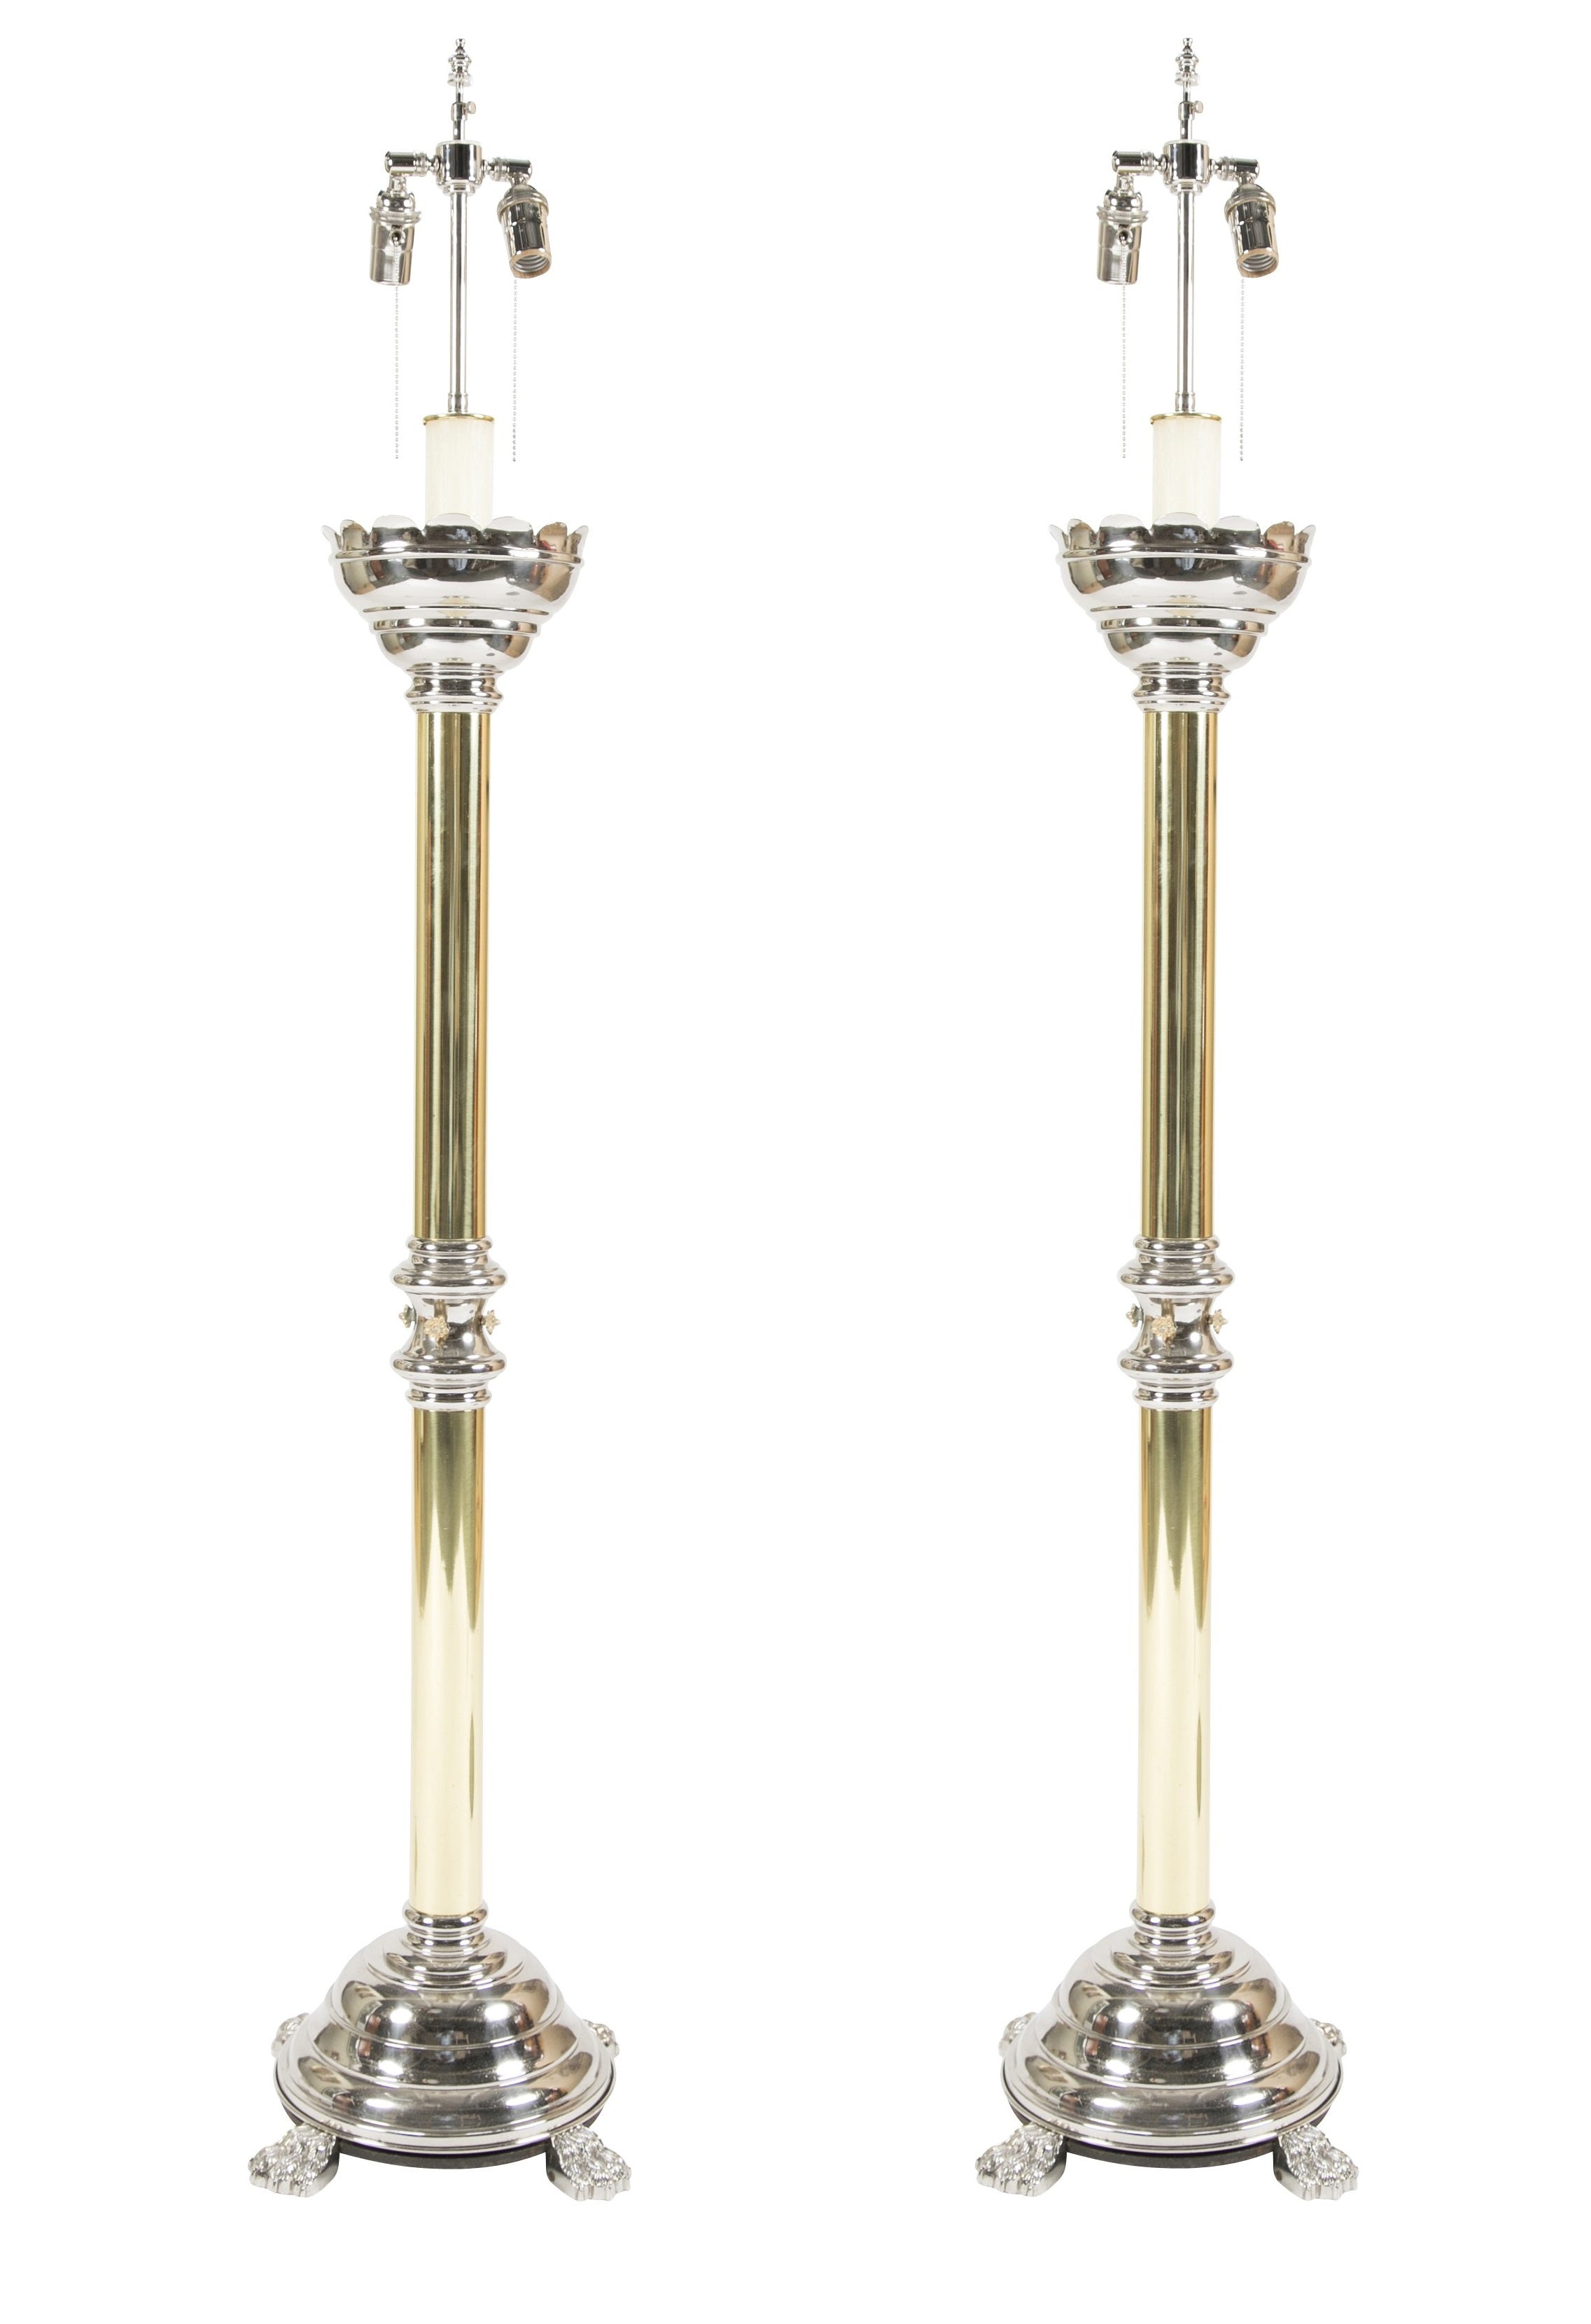 Pair of Brass & Nickel Altar Sticks now Electrified